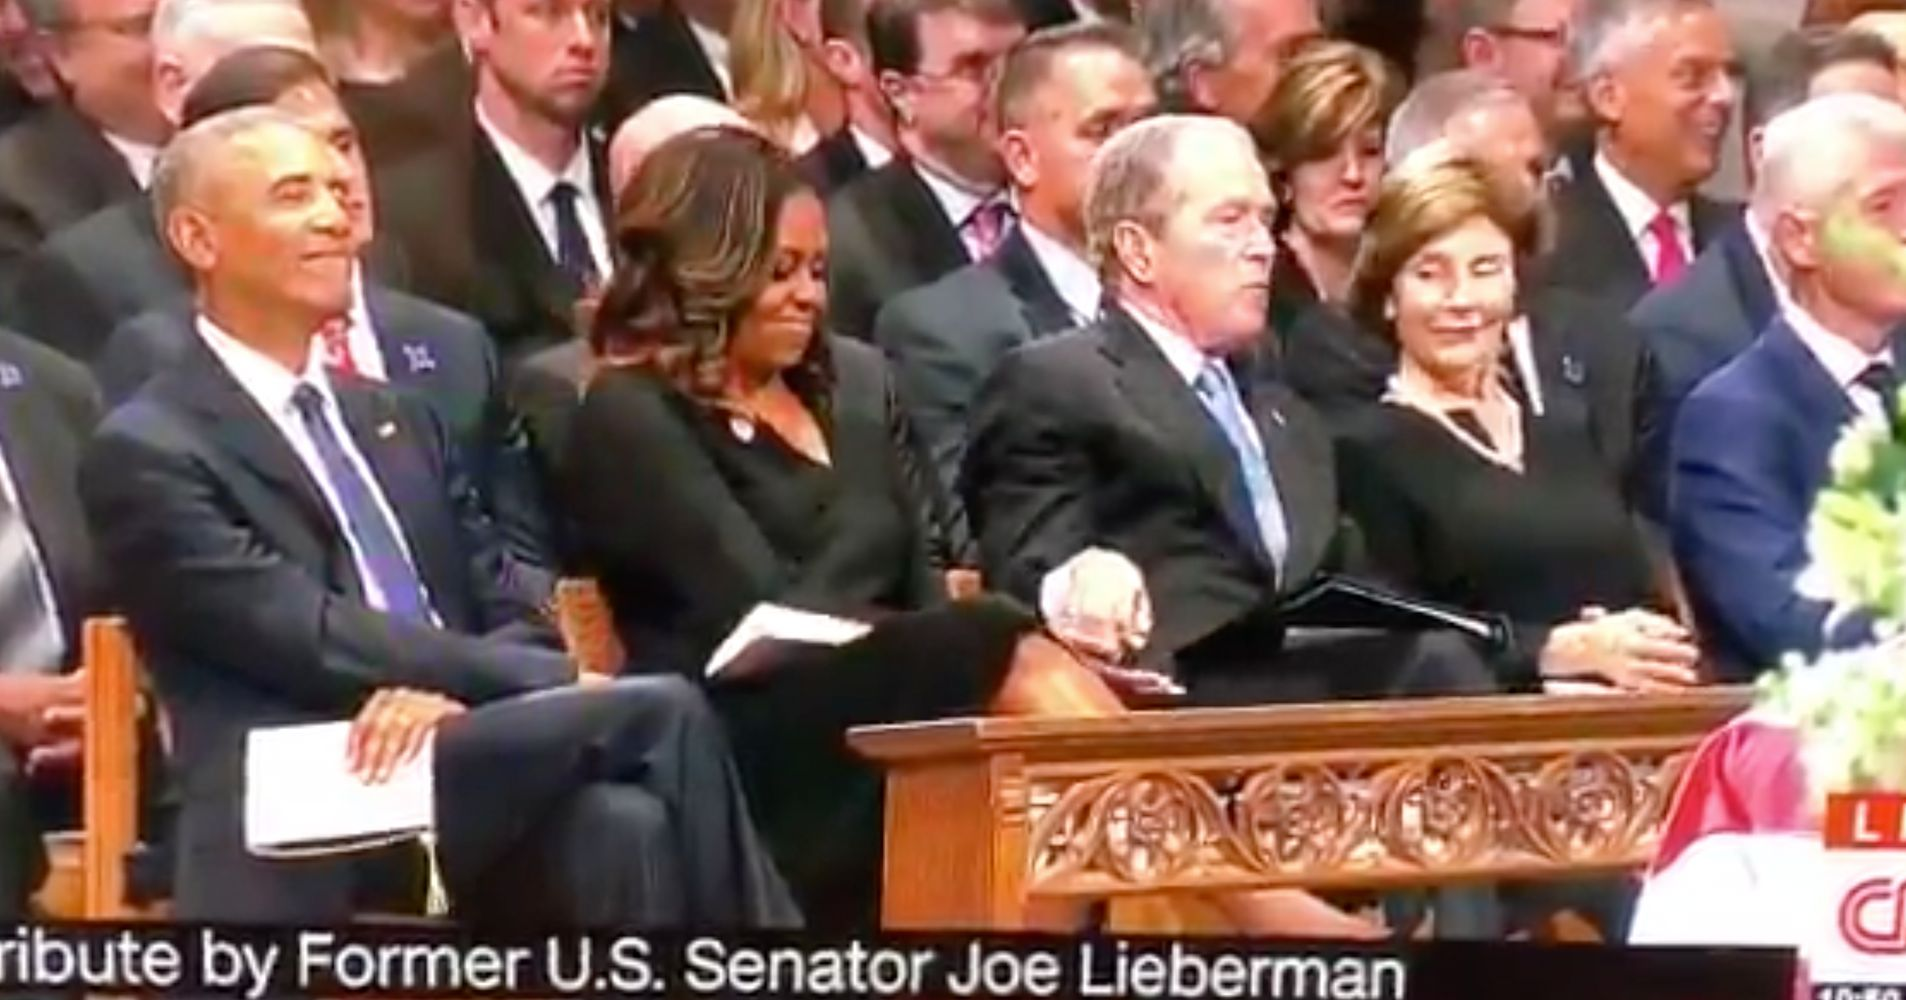 Did George W. Bush Just Sneak Michelle Obama A Piece Of Candy At McCain's Funera...